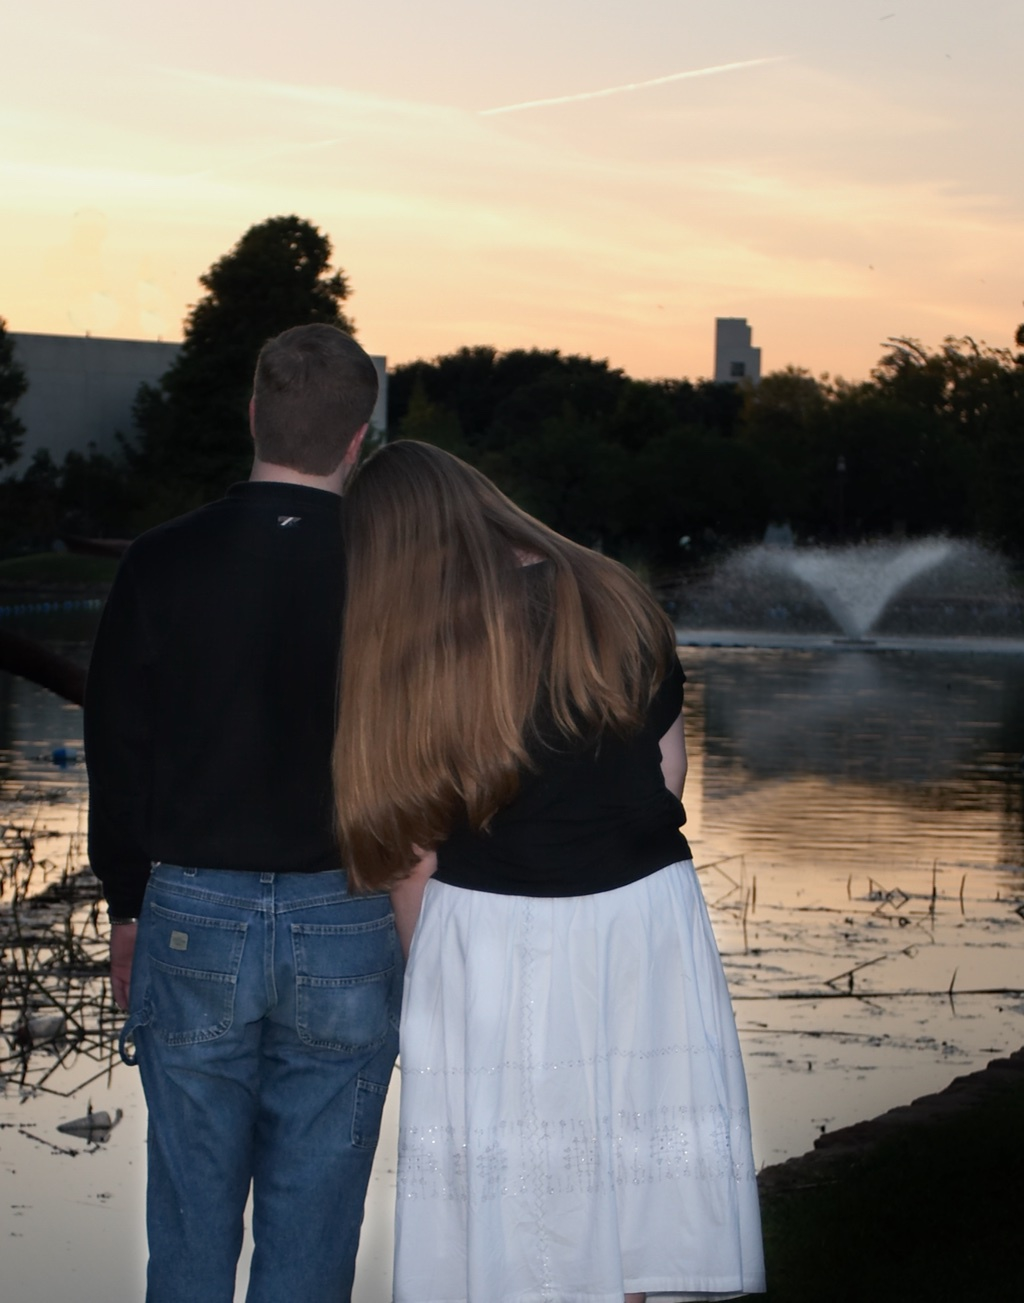 Ted and Megan at the Lagoon in Fair Park